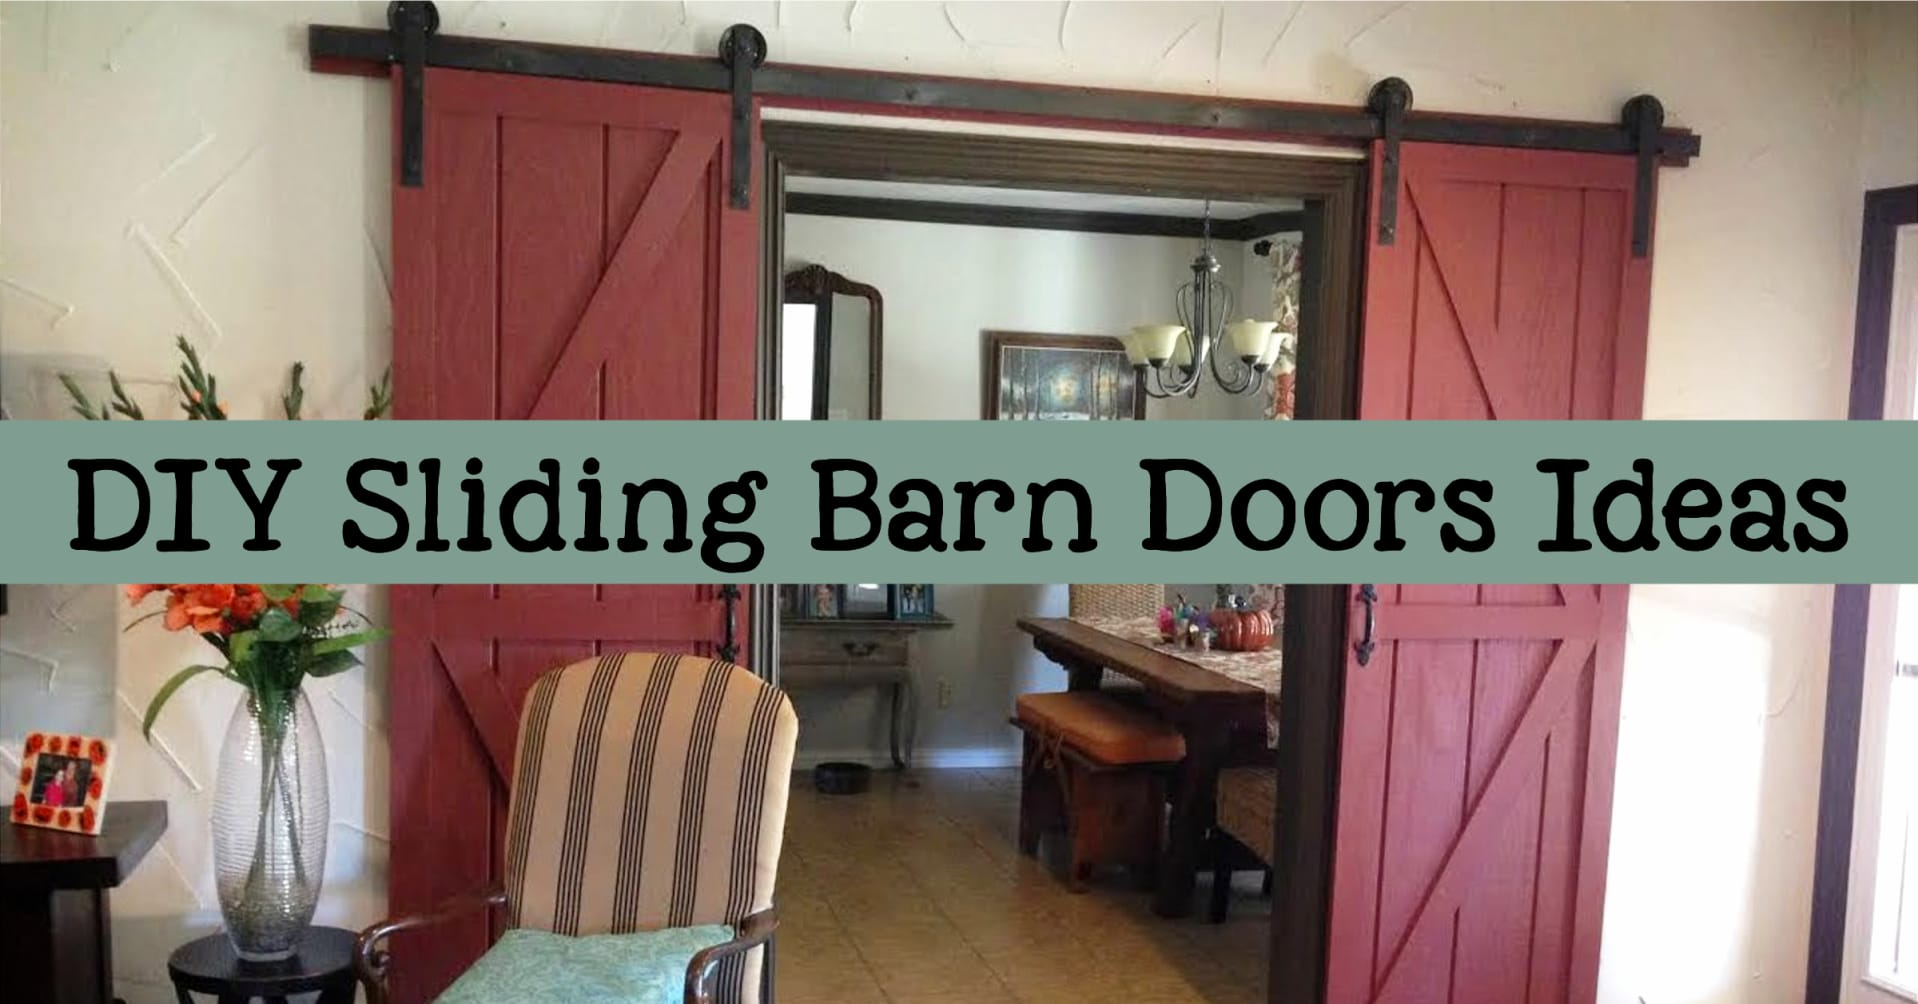 Sliding Barn Doors - DIY interior sliding barn doors and double sliding barn doors pictures in houses. Elegant, rustic and farmhouse style double barn doors for bathrooms, bedrooms, kitchens, living rooms, master bath, basements, closets, mud rooms, pantries and other small spaces. Sliding barn doors DIY how to build barn doors projects and sliding barn doors for sale - also sliding barn door installation tips